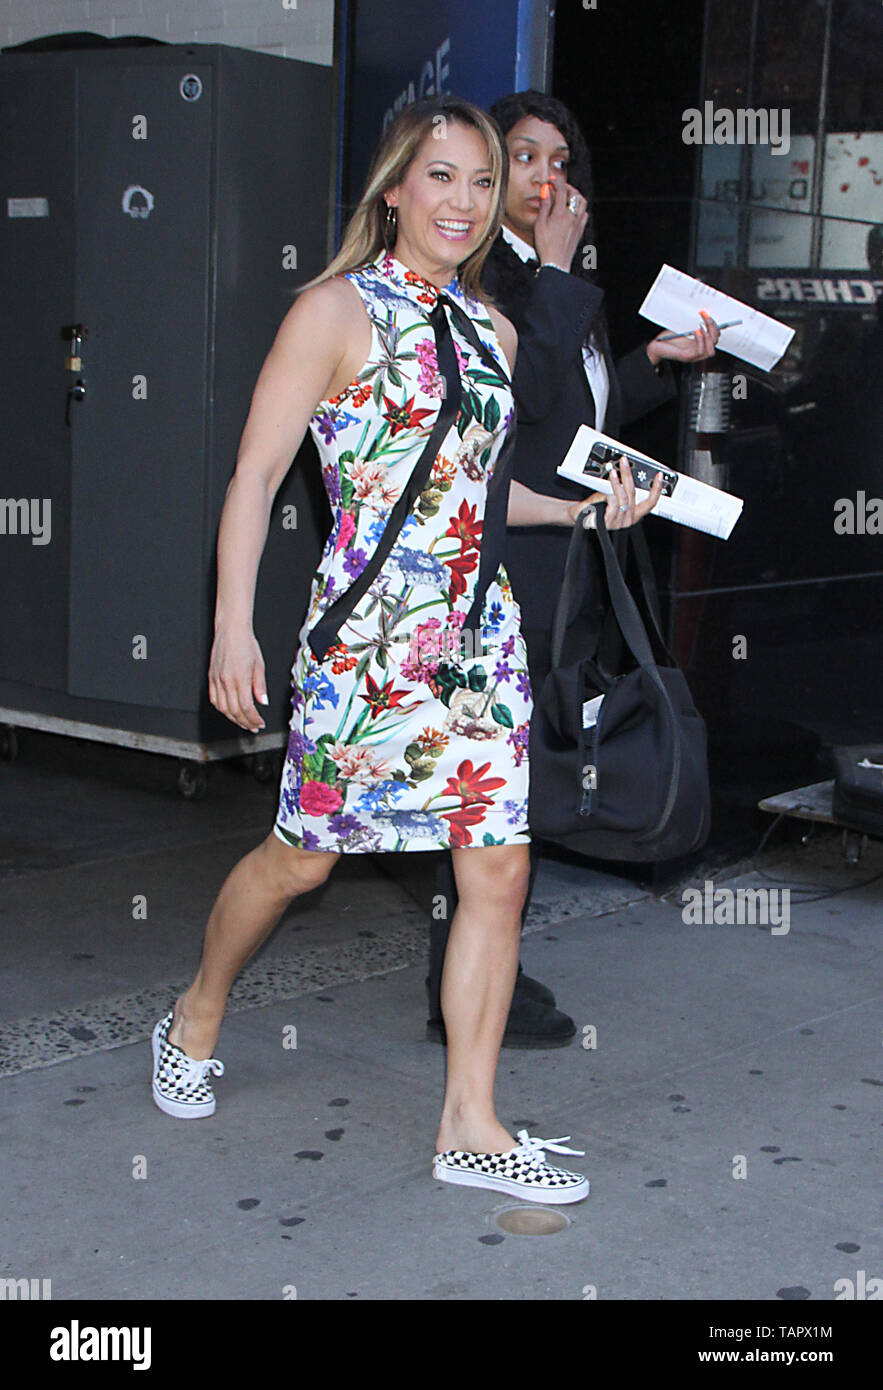 New York, USA. 27th May 2019. Ginger Zee of Good Morning America in New York New York, USA. 27th May 2019. Credit:RW/MediaPunch Credit: MediaPunch Inc/Alamy Live News Stock Photo